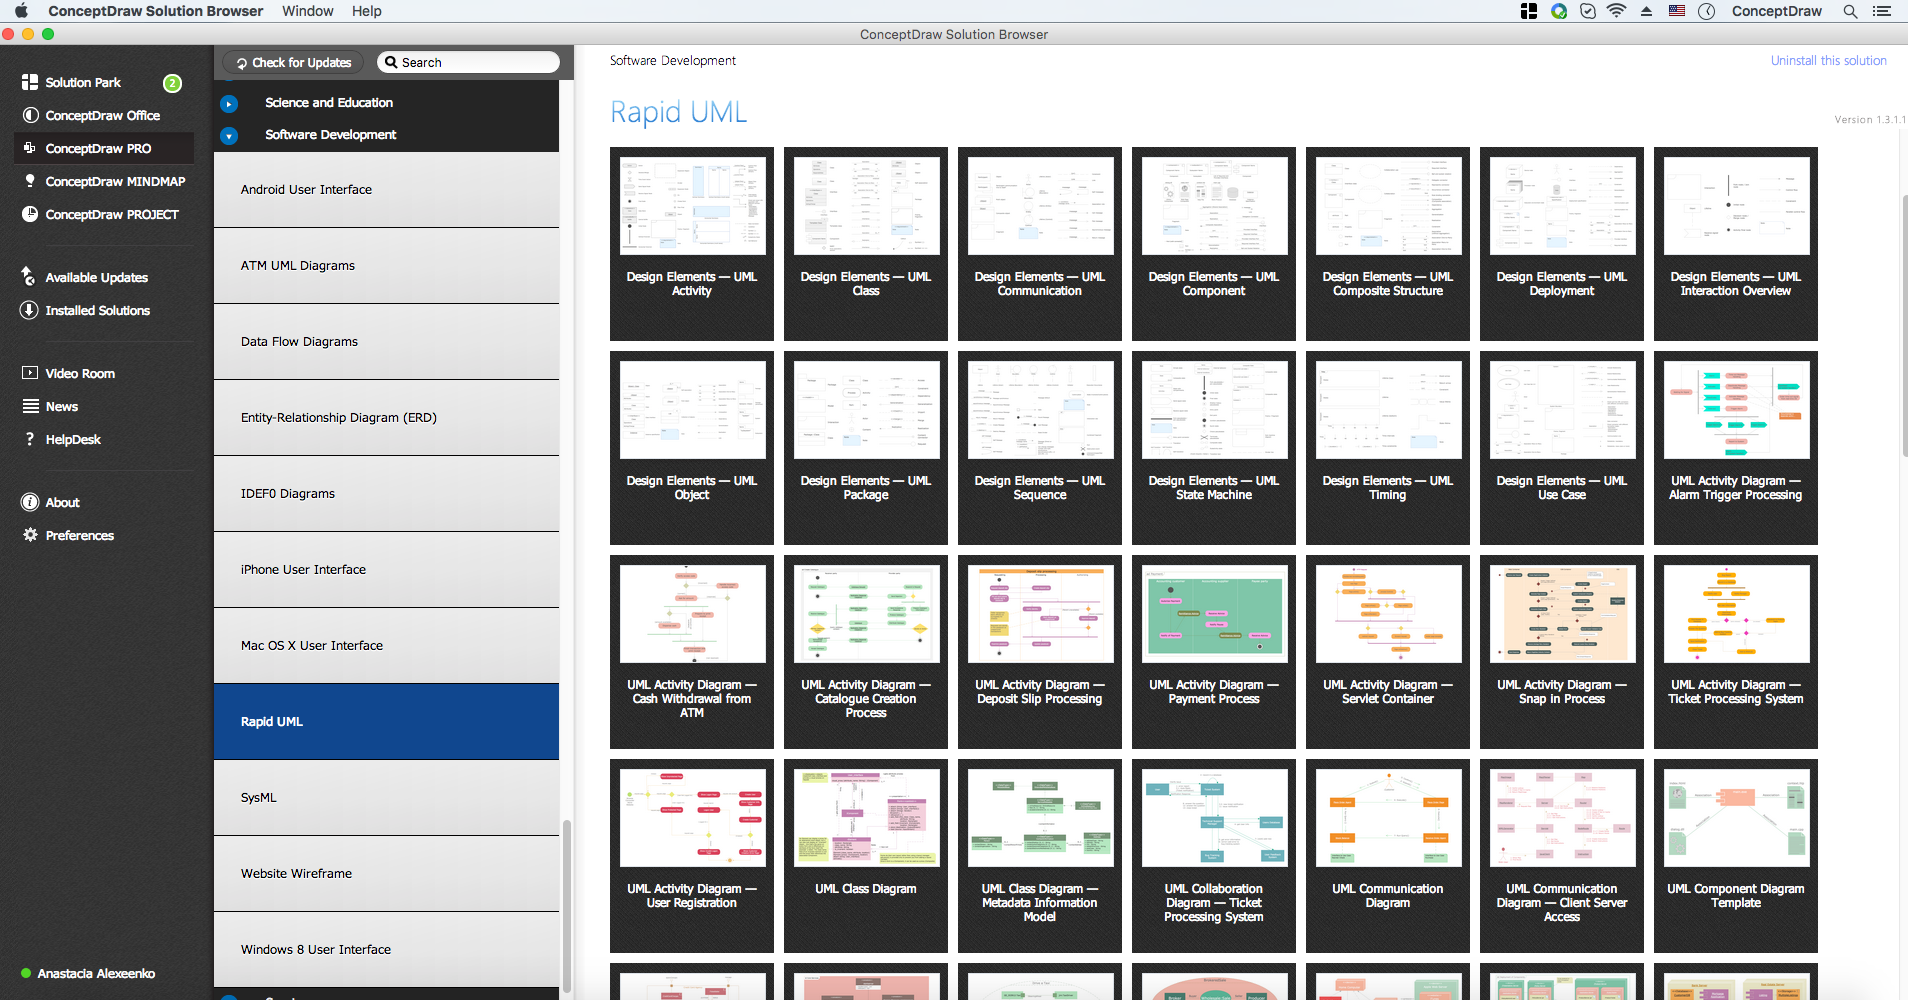 Rapid UML Solution in ConceptDraw STORE